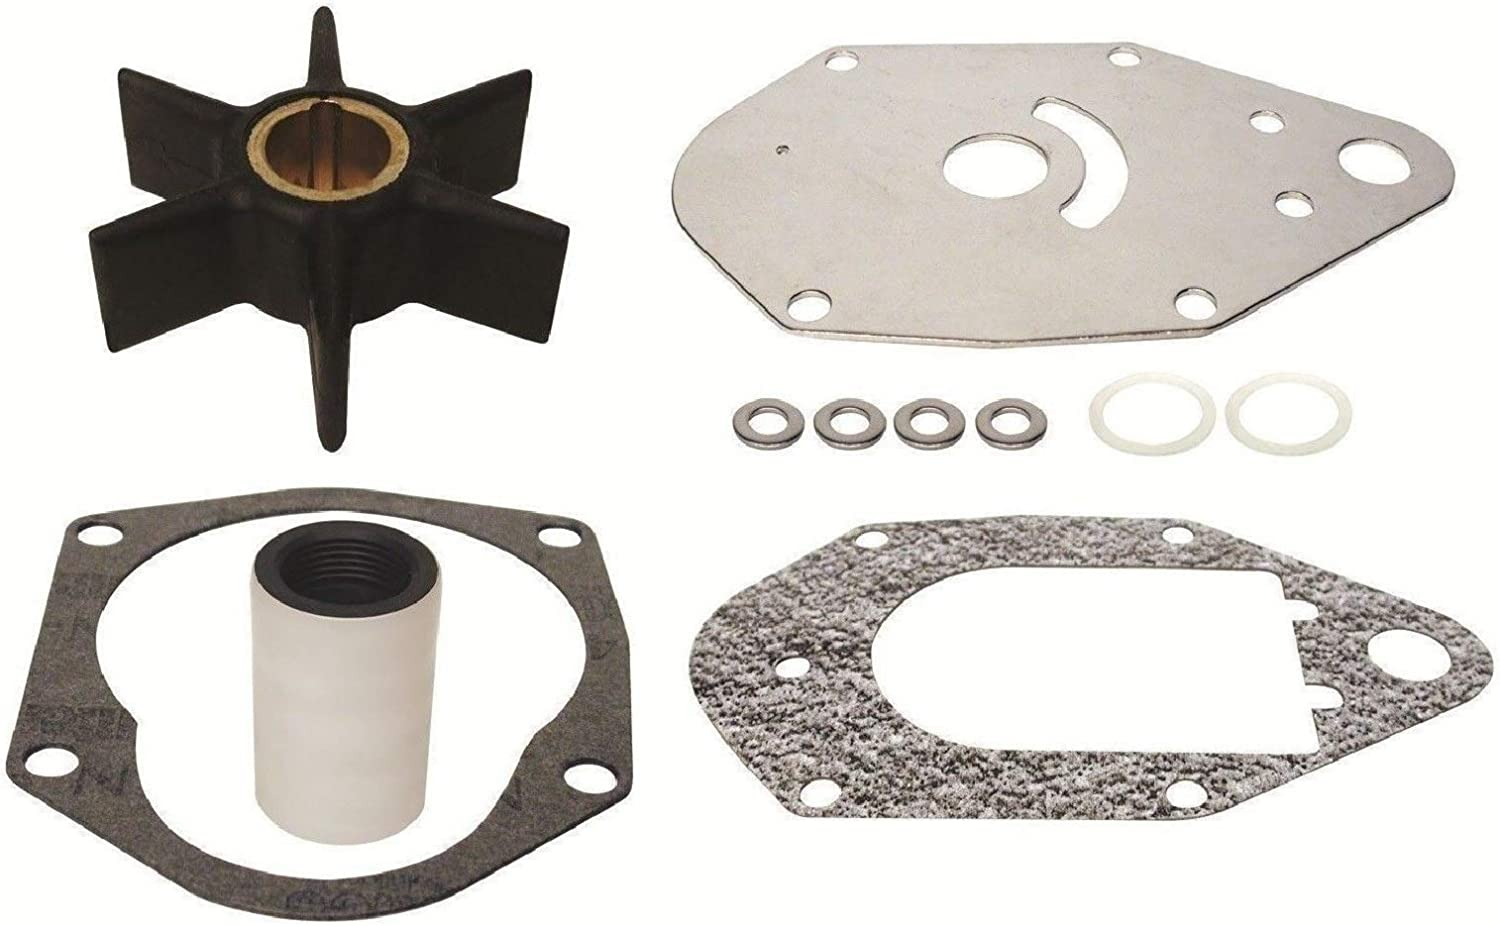 GLM Water Pump Impeller Kit for Mercury 50 55 60 hp 3 Cylinder Replaces 47-19453T3, 47-19453Q2 Please Read Product Description for Exact Applications